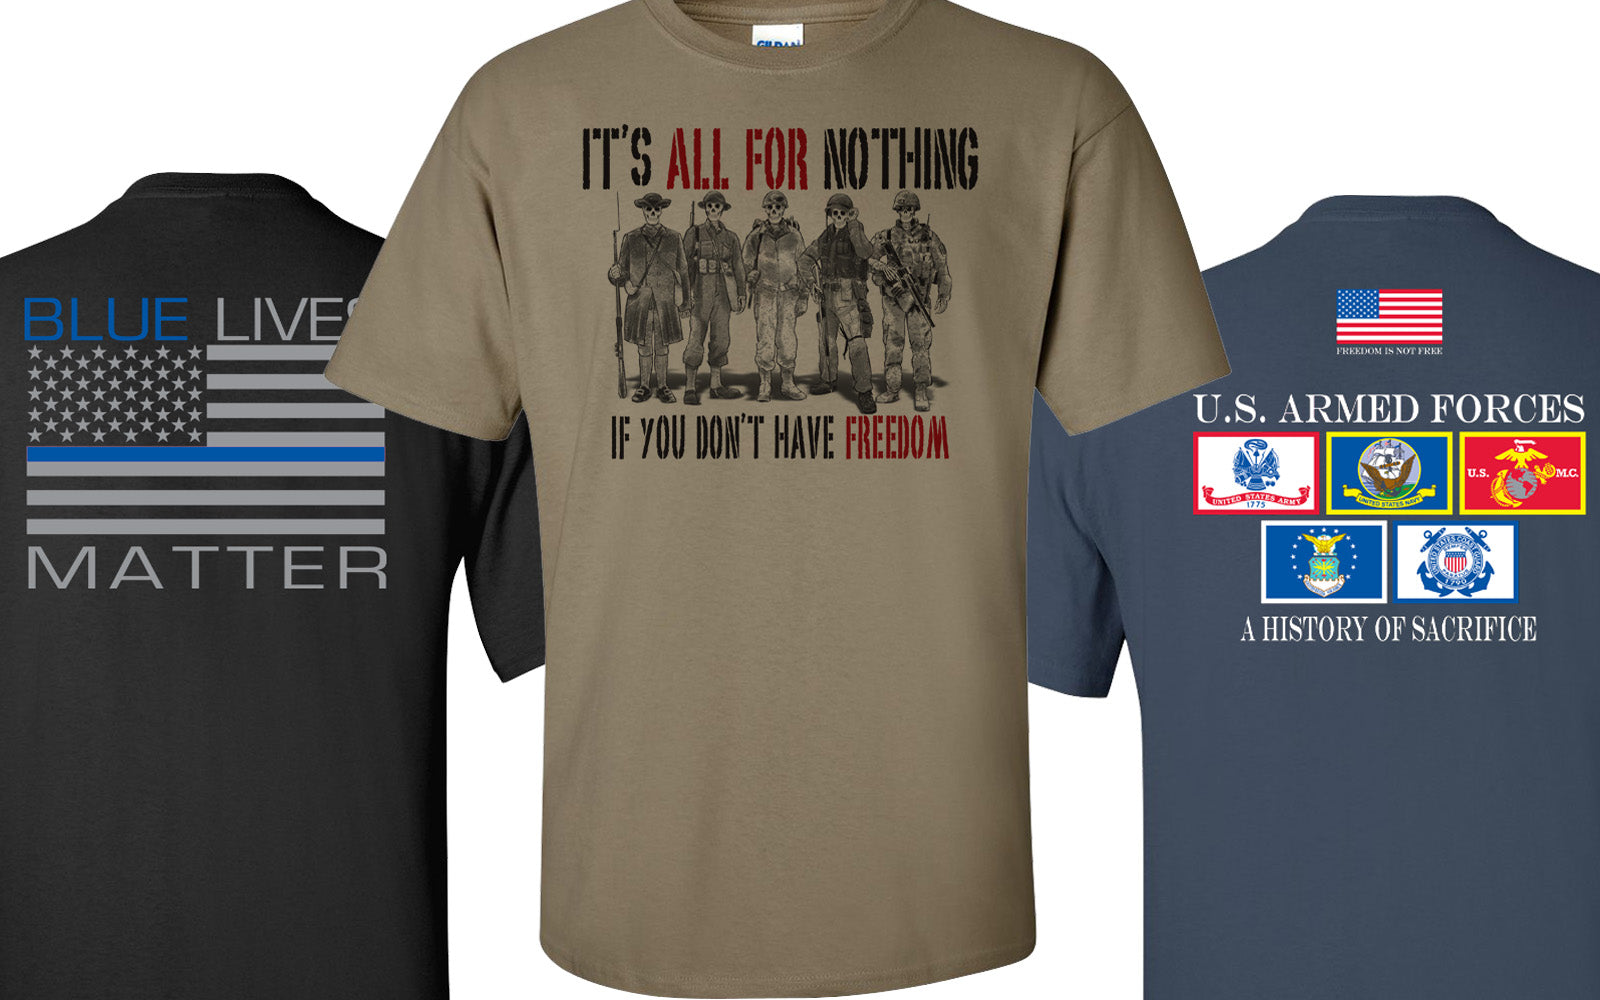 Military Police / First Responder Shirts